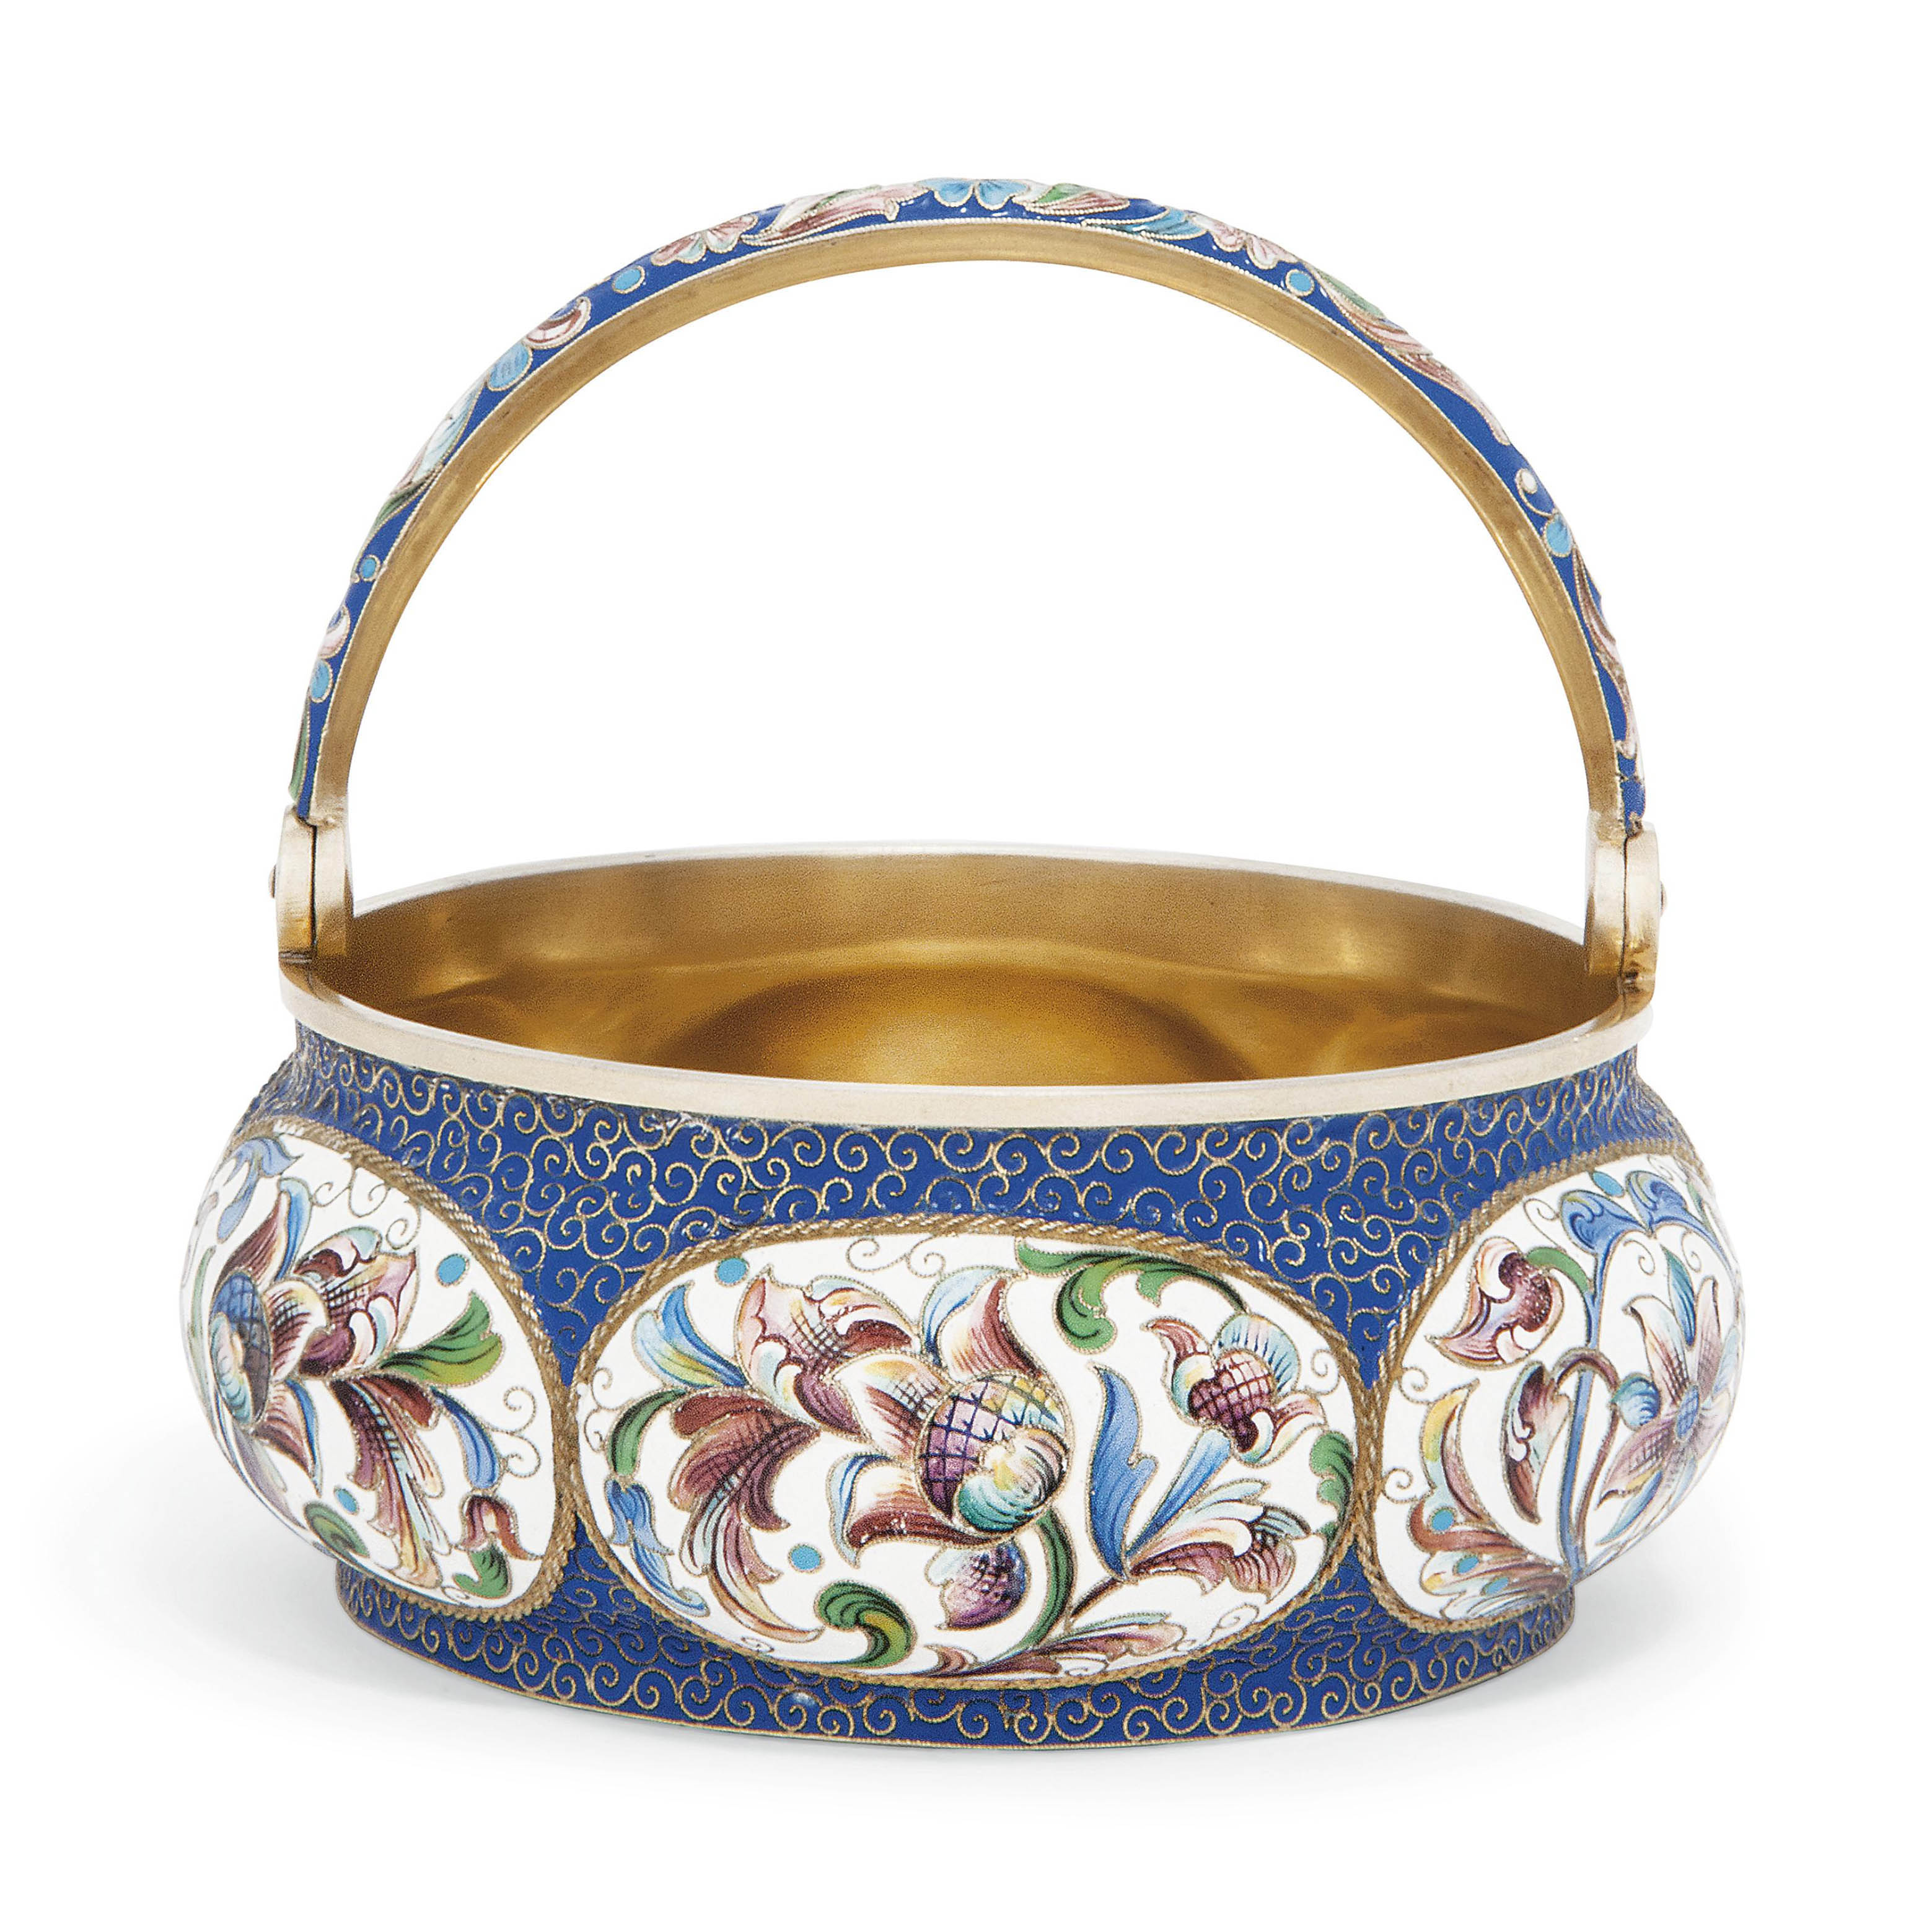 A RUSSIAN SILVER-GILT AND CLOISONNE ENAMEL SWING-HANDLED SUGAR BOWL